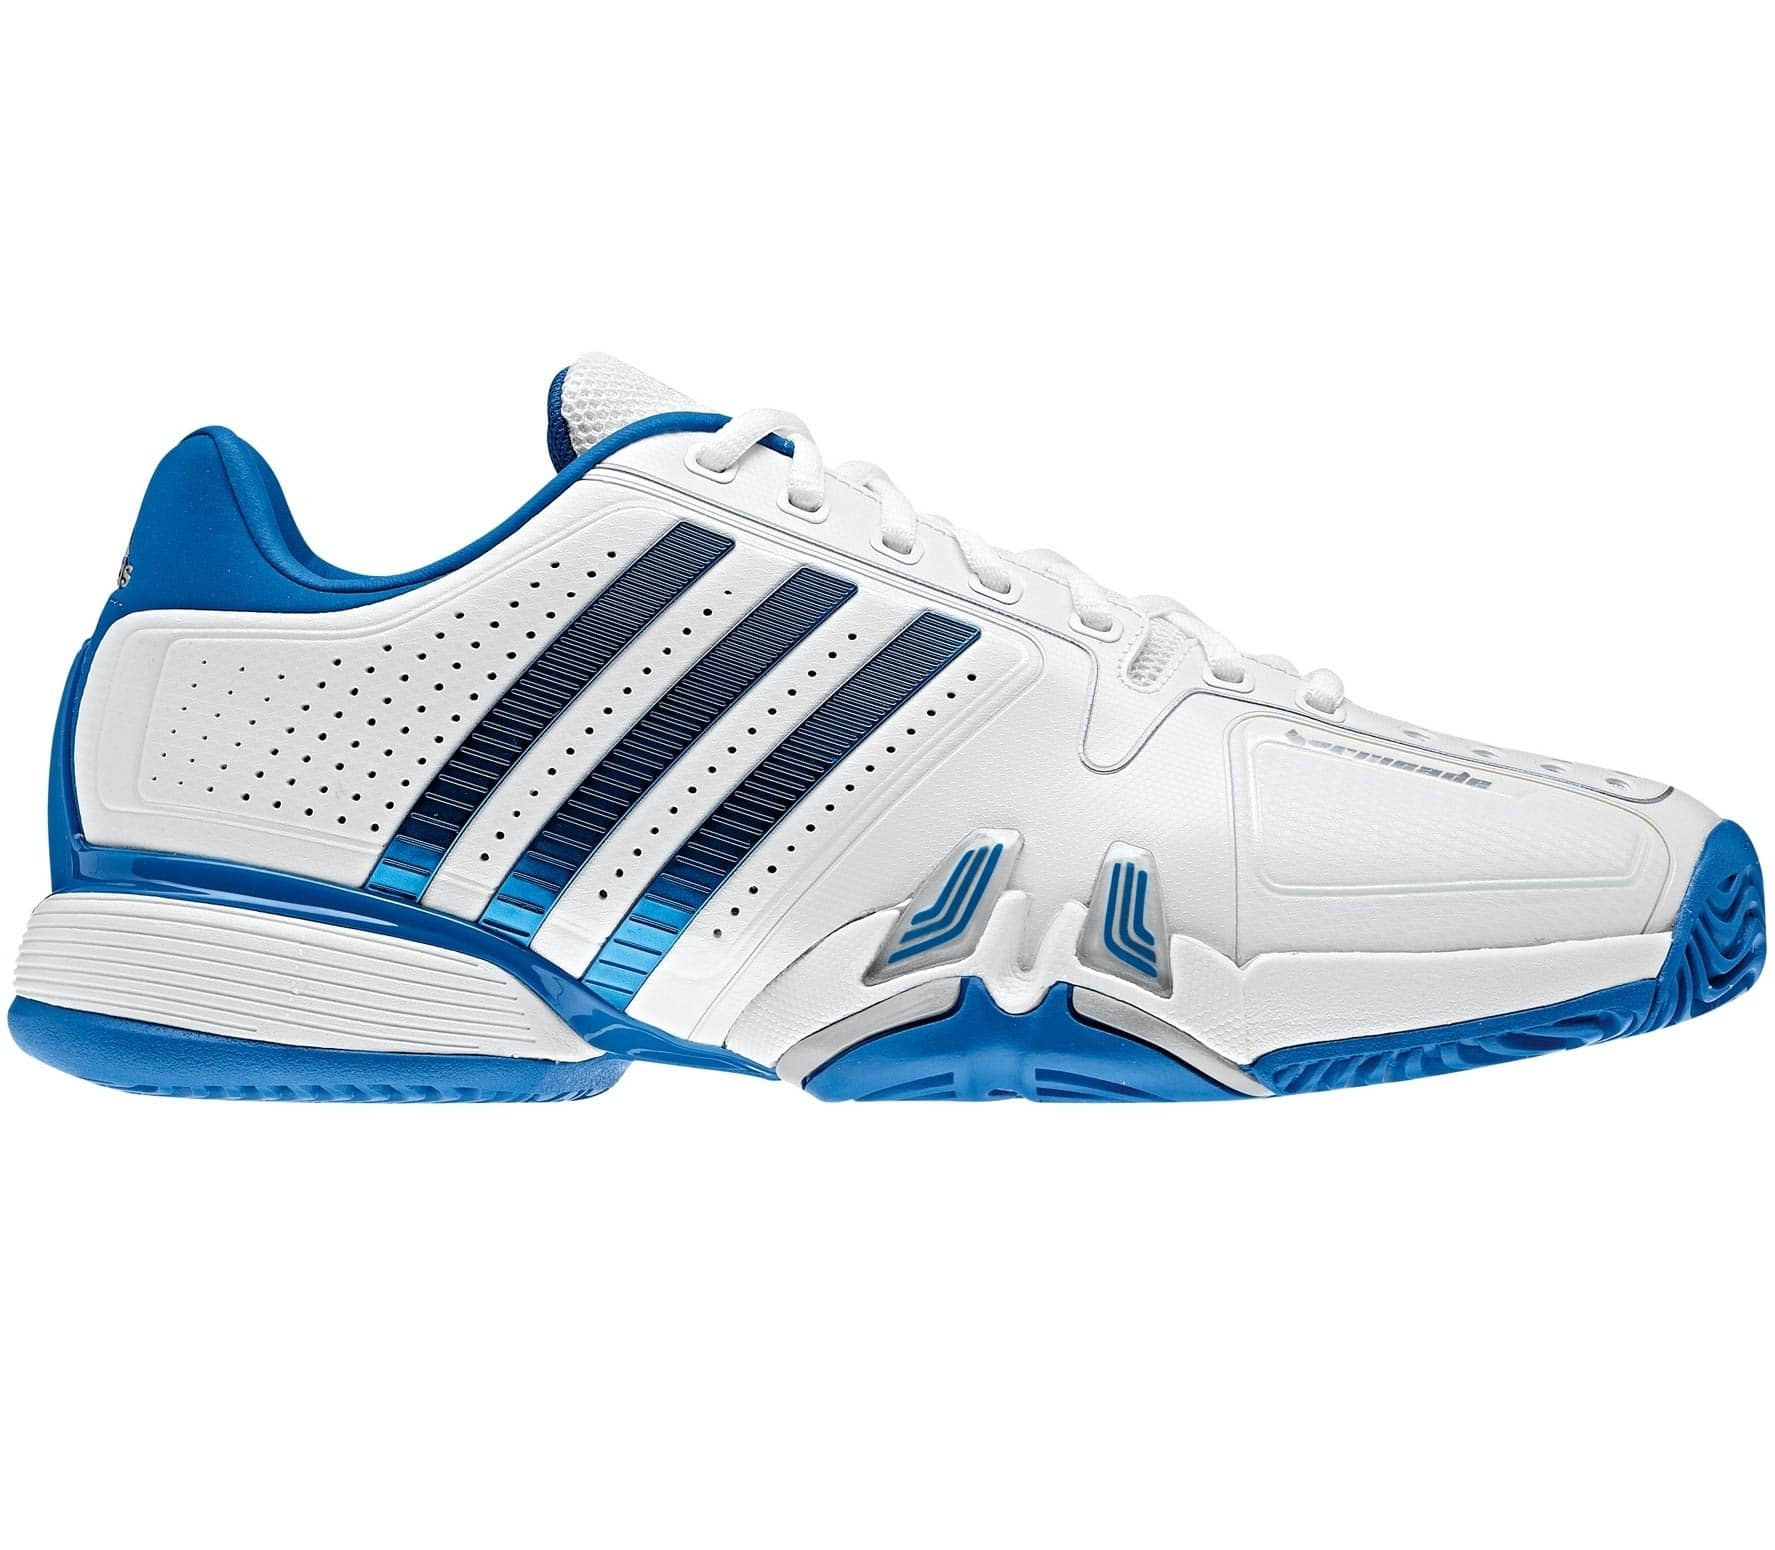 new product d44d6 f0af9 Adidas - Tennisschuhe mens adipower Barricade Synthetic - SS13